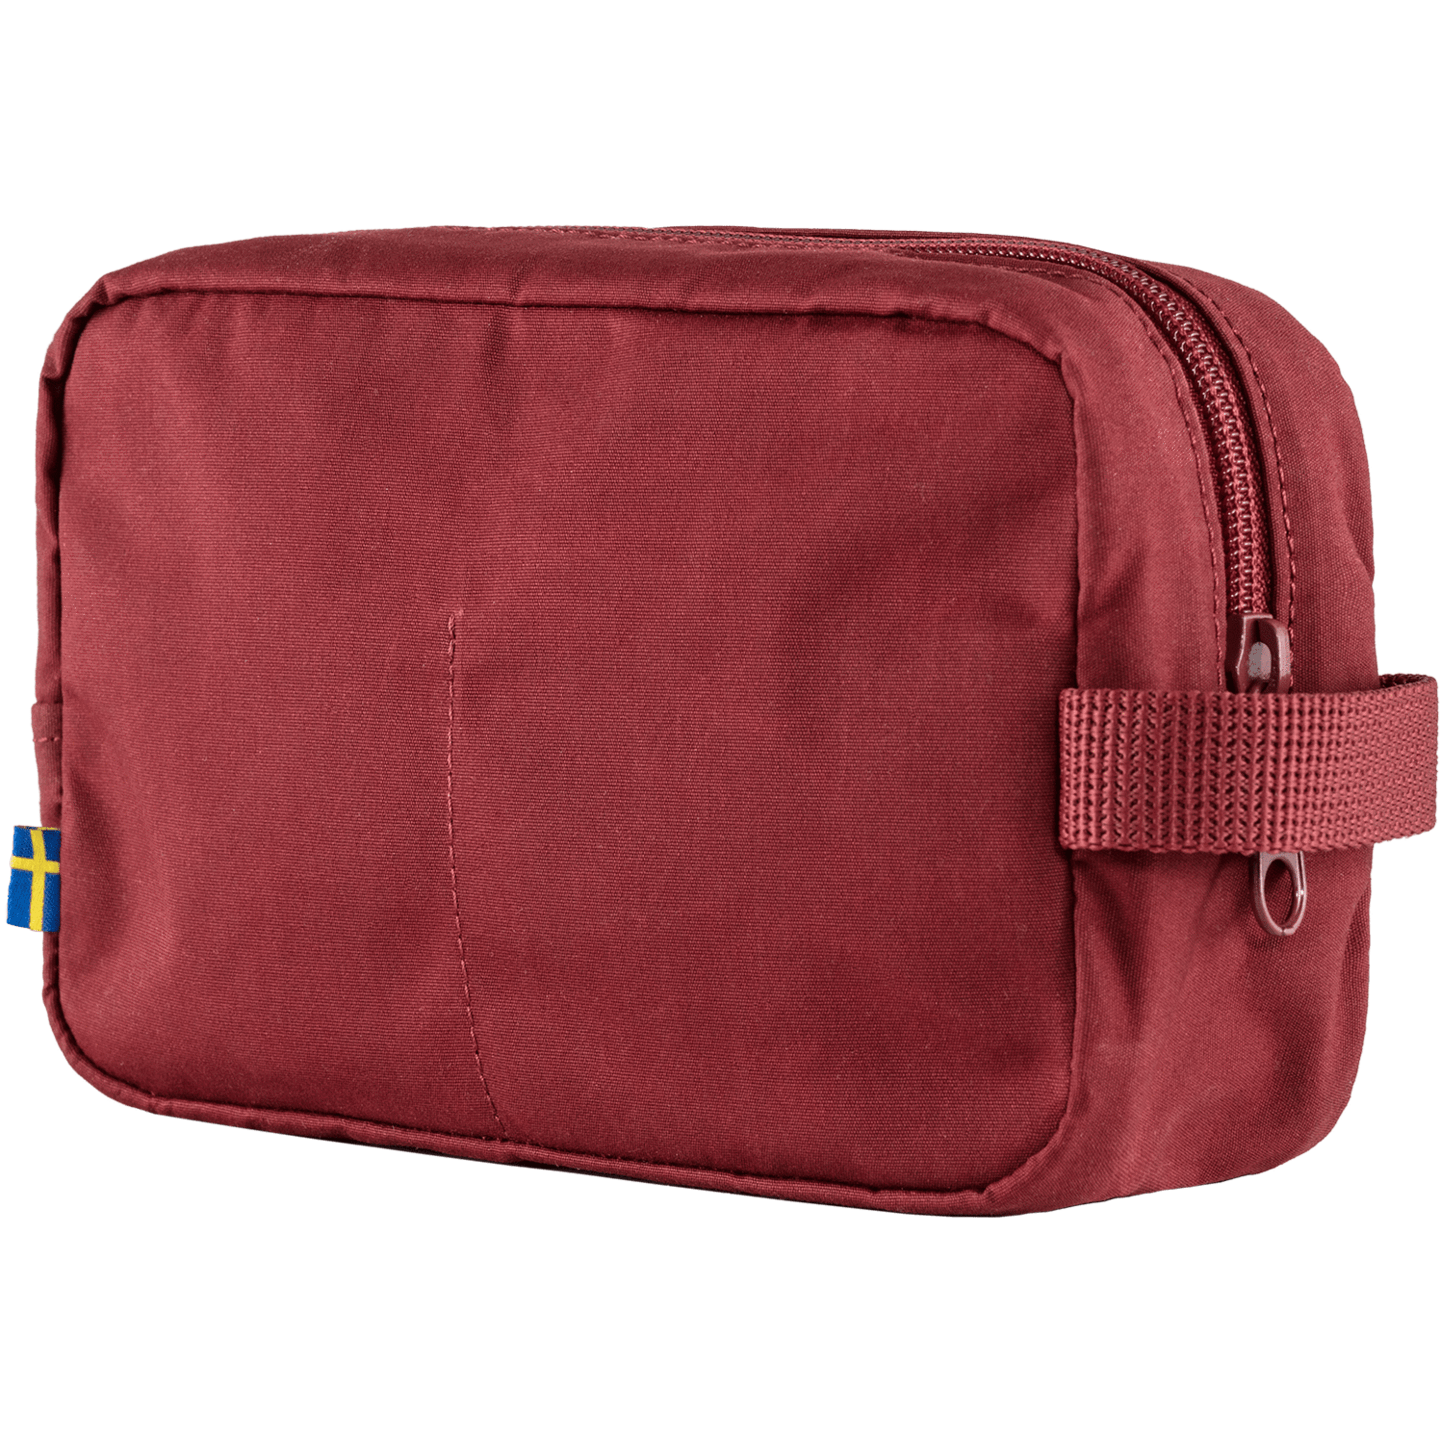 Kanken Gear Bag - Ox Red - Find Your Feet Australia Hobart Launceston Tasmania